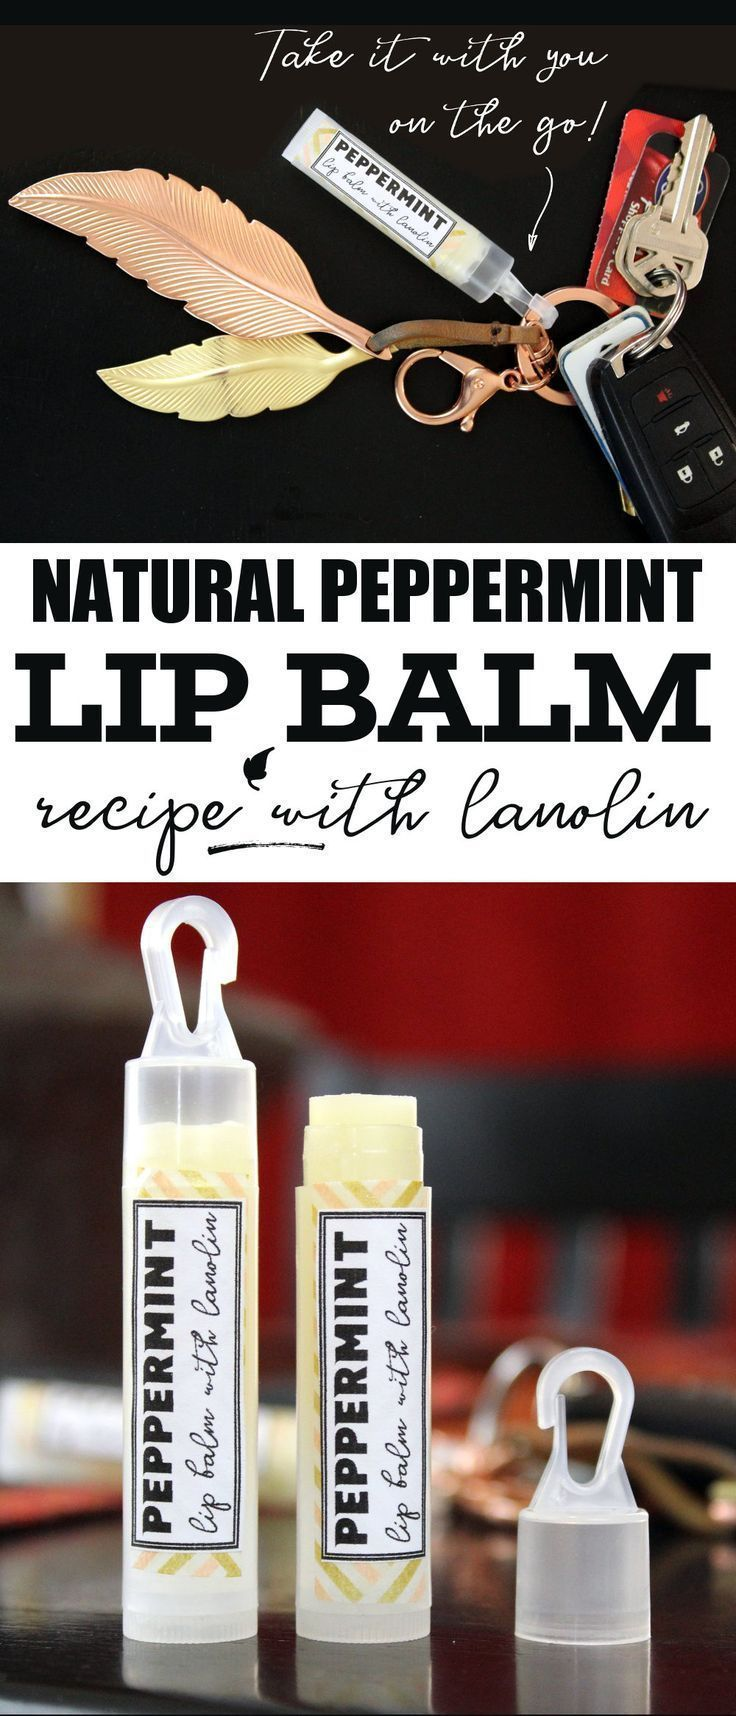 Peppermint lip balm recipe for natural winter skin care. Learn how to make this ...